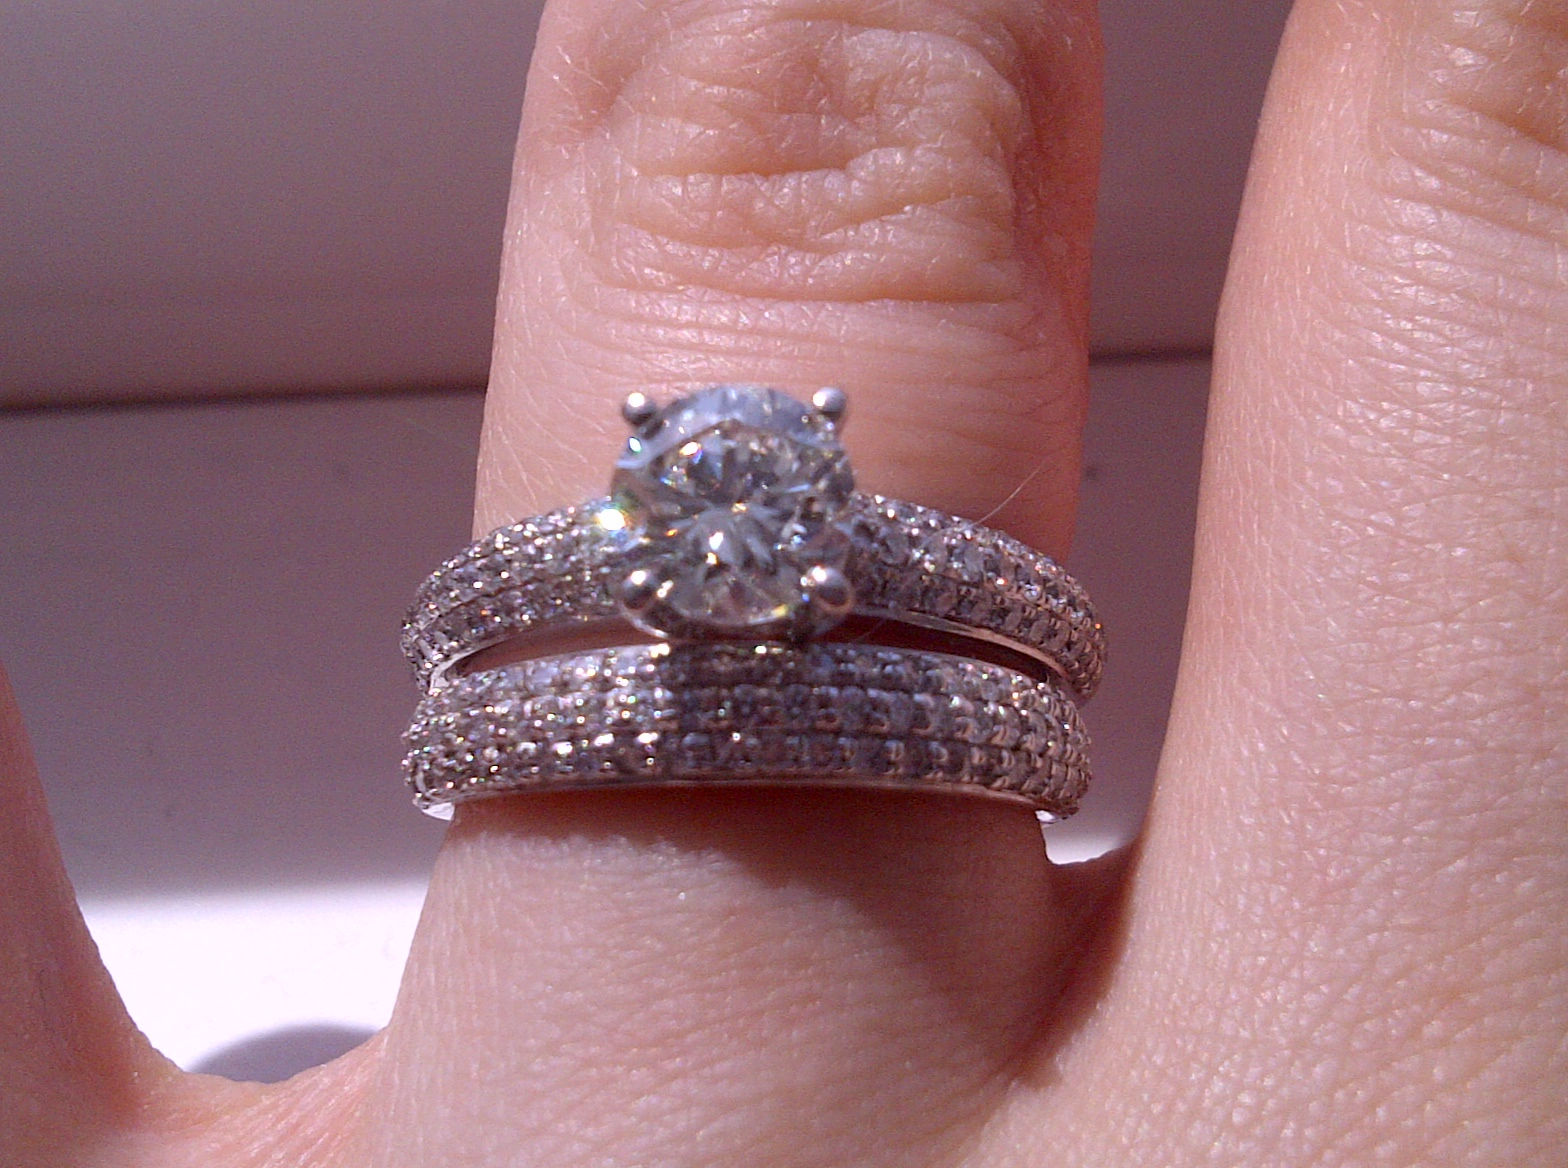 engagement ring wedding band which way to wear it show me your wedding set wedding set Engagement Ring Wedding Band Which way to wear it Show me your wedding set